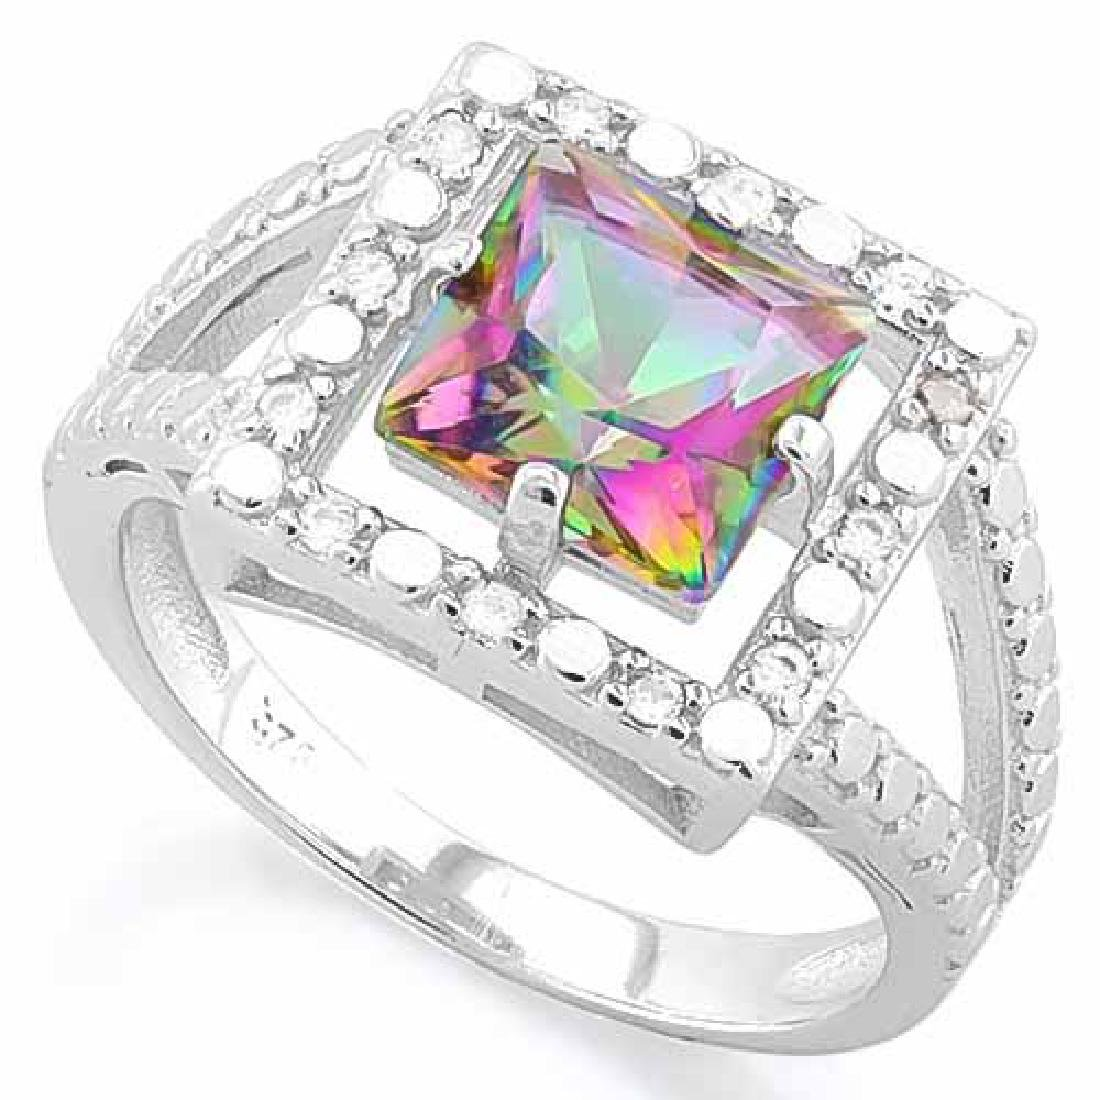 1 1/2 CARAT MYSTIC GEMSTONE & DIAMOND 925 STERLING SILV